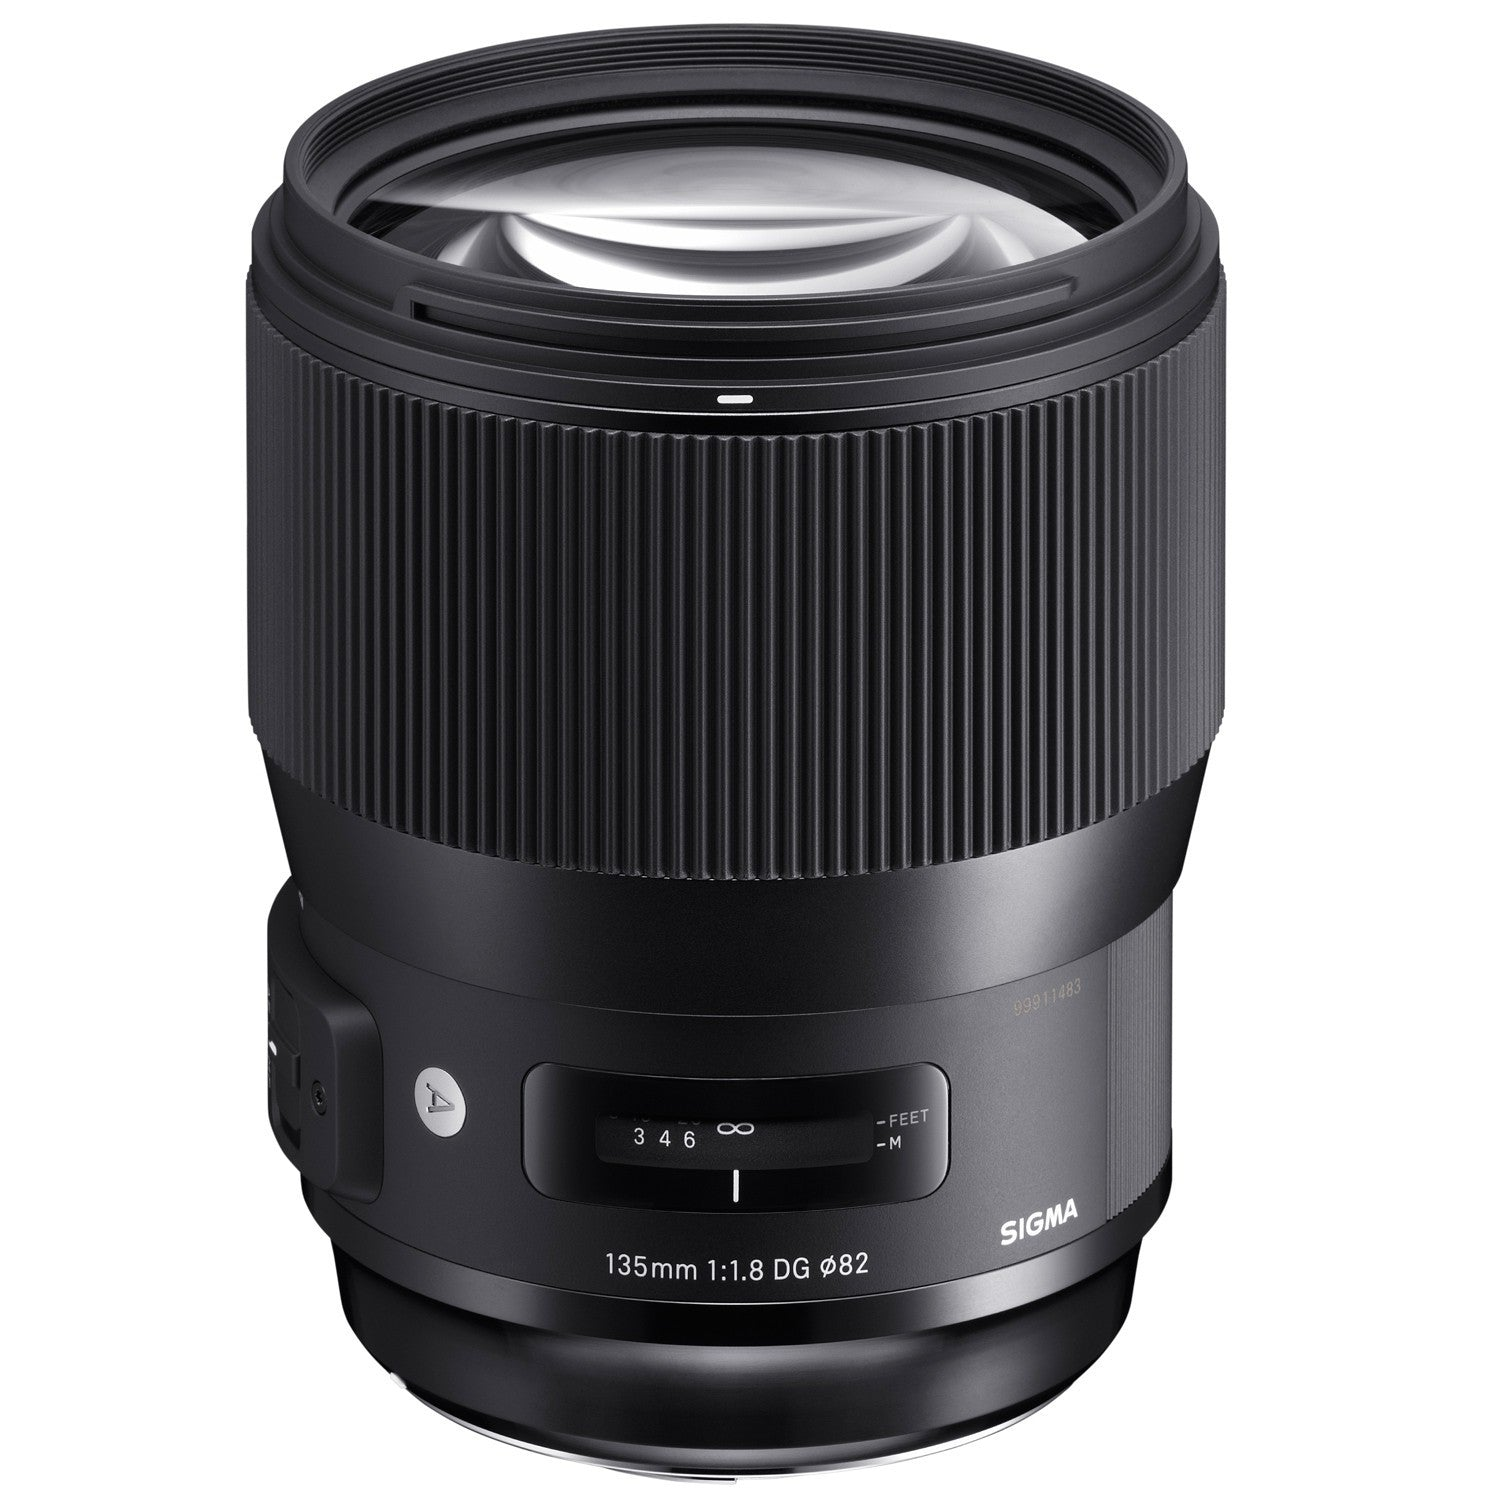 Sigma 135mm f1.8 DG HSM Art - Nikon Mount - Photo-Video - Sigma - Helix Camera